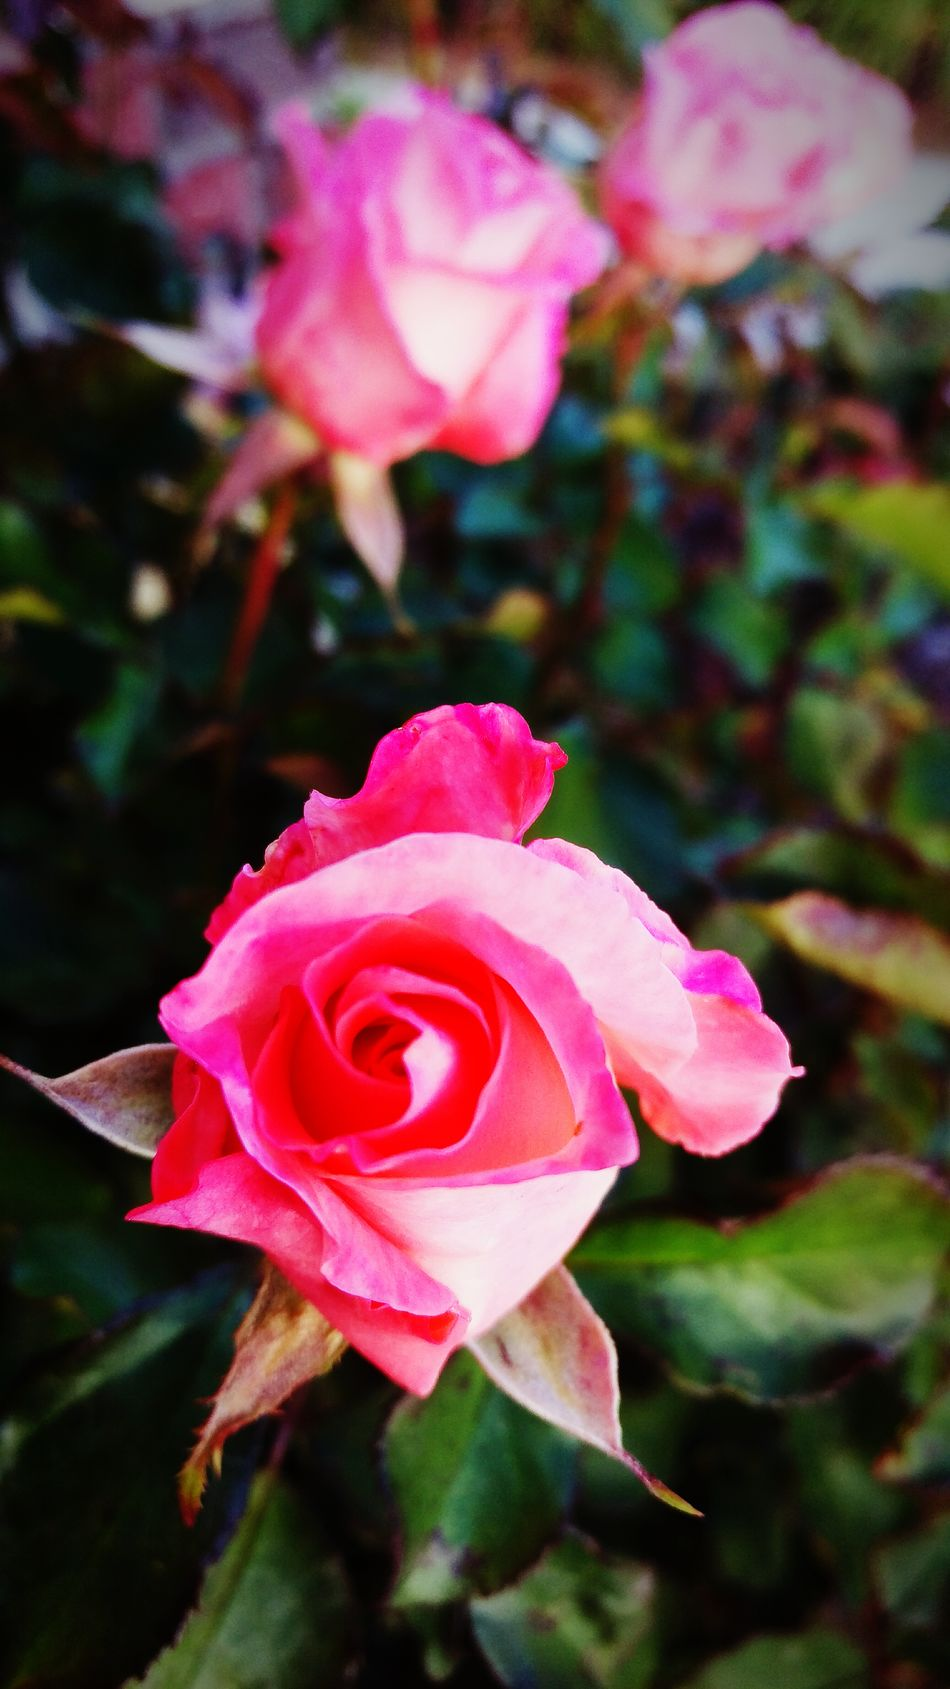 Pink Pink Rose Pretty Rose  Roses Rose Petals Rose Garden Rose Collection Blossum Bloom Rose Bud Rose Photography Close Up Photosynthesis